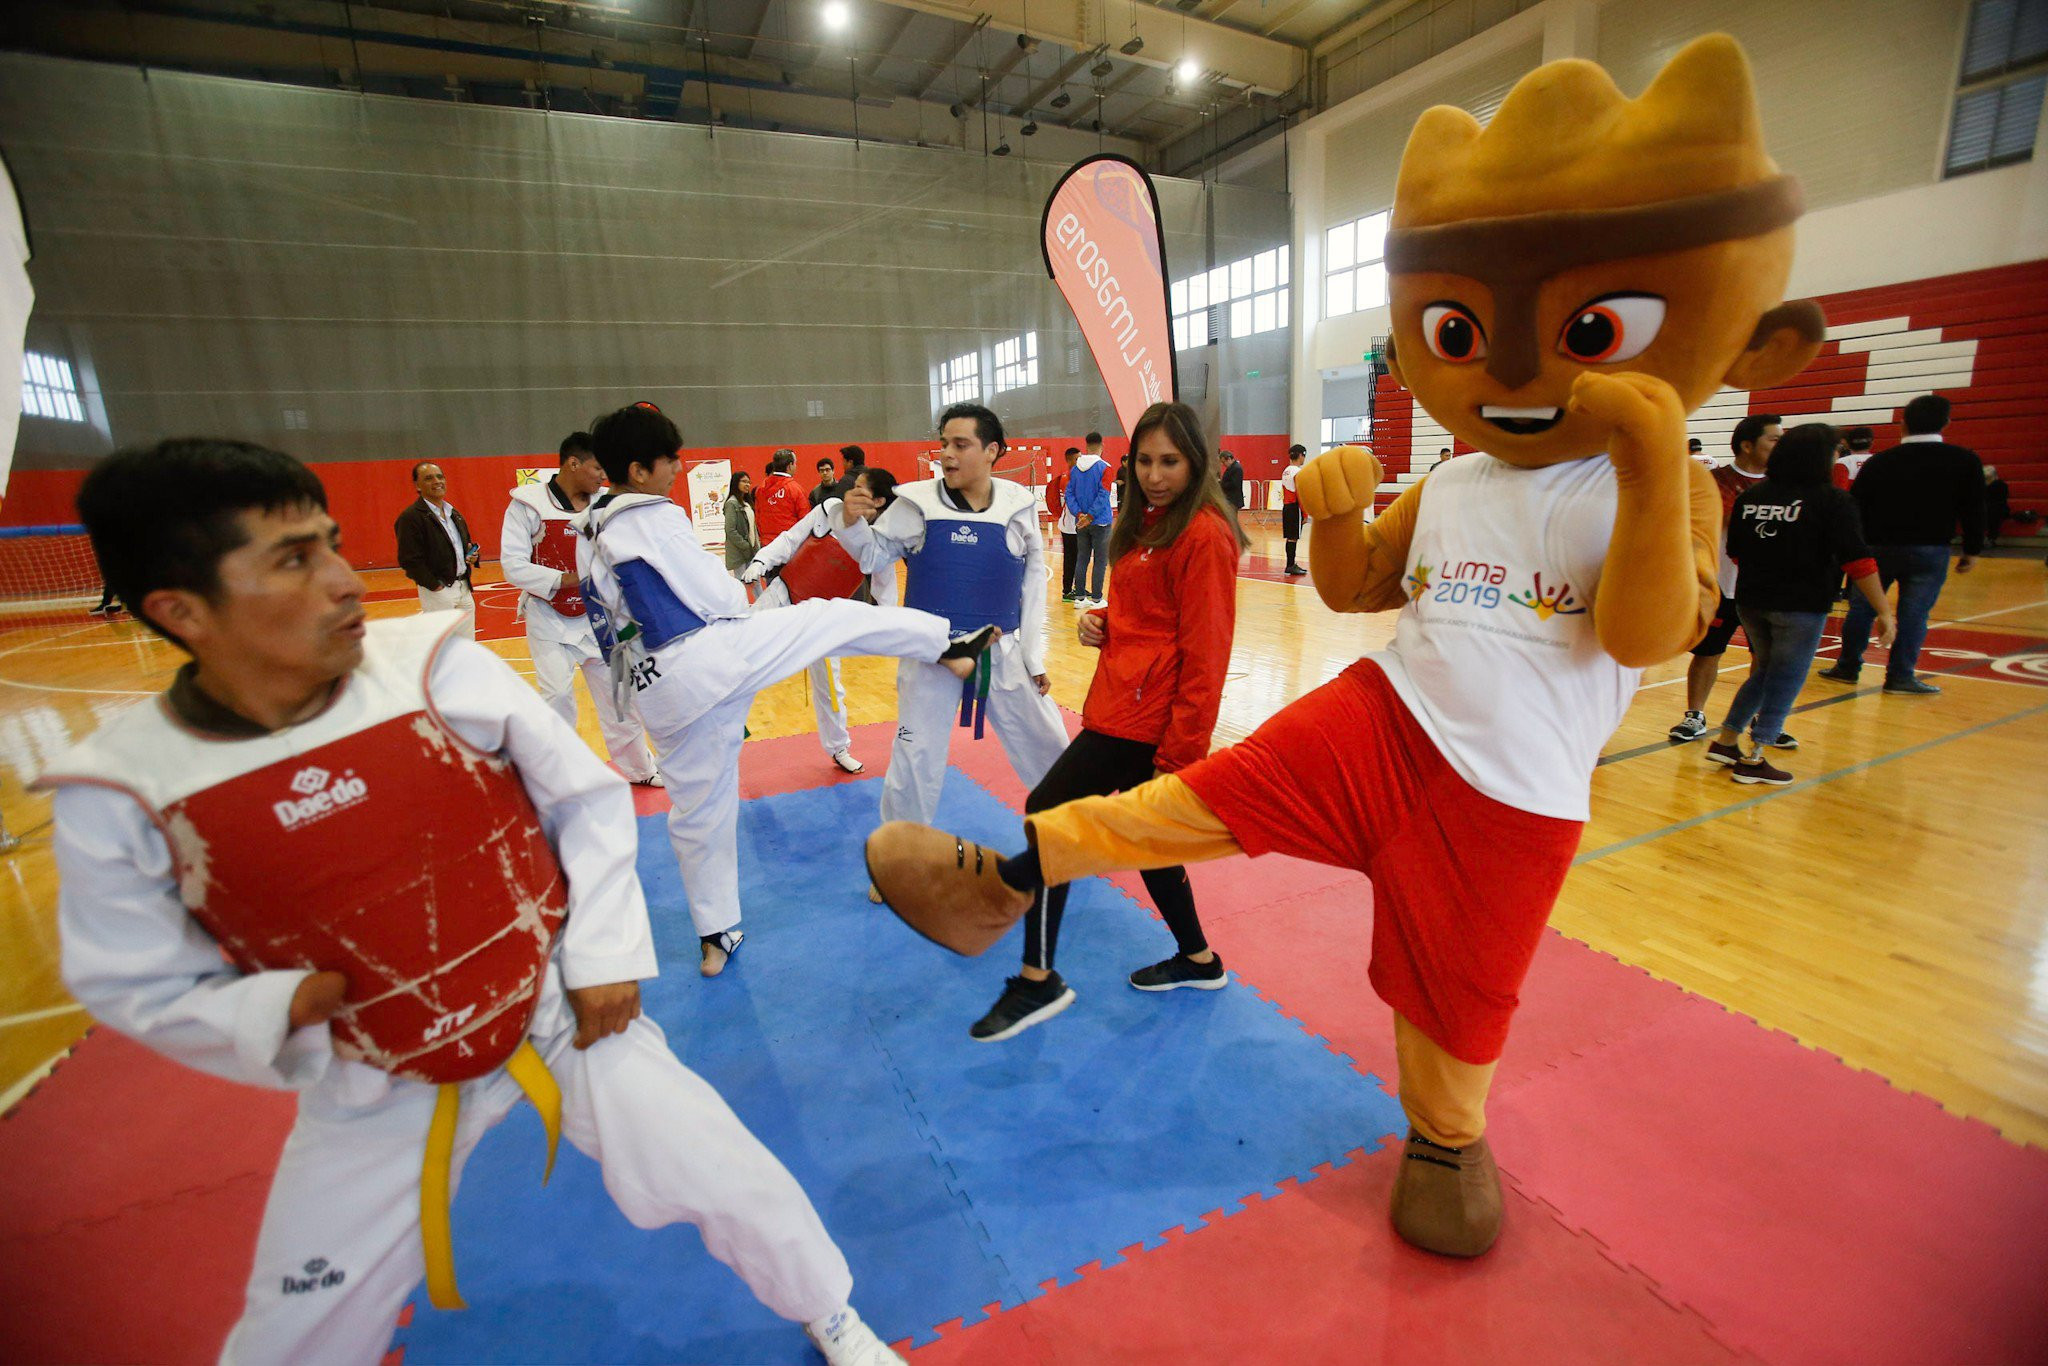 Lima 2019 host sporting event to mark one year to Parapan American Games